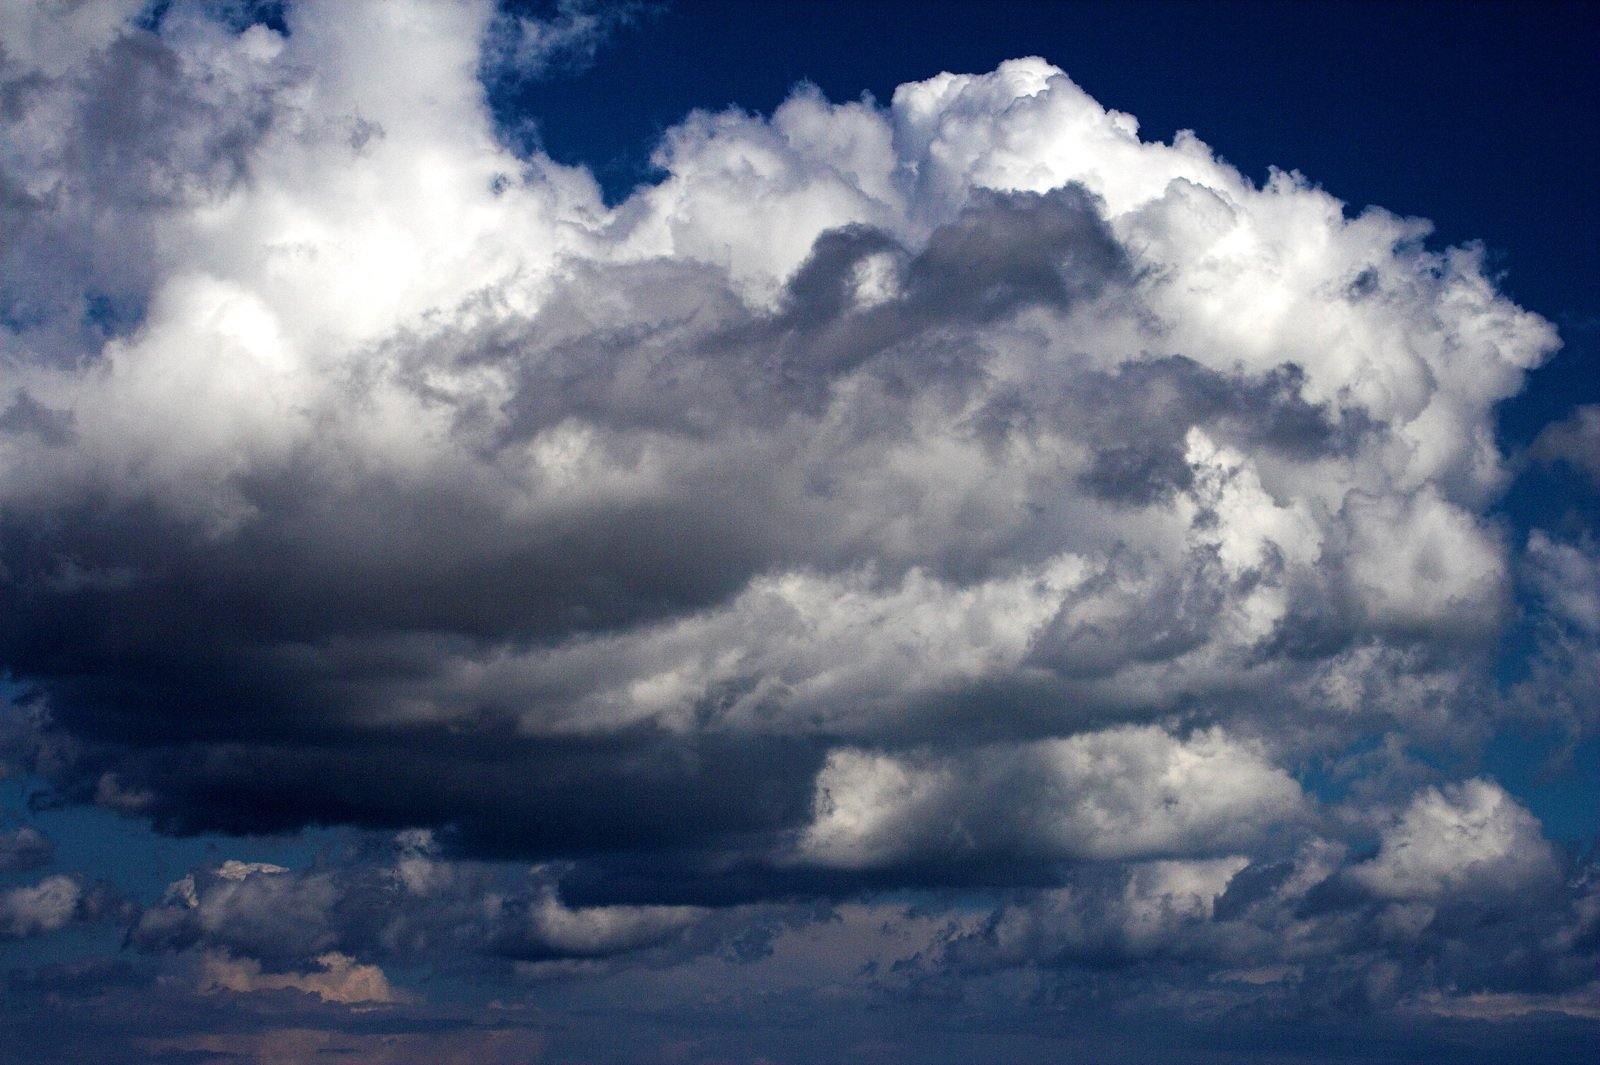 Free Storm Clouds Stock Photo - FreeImages.com